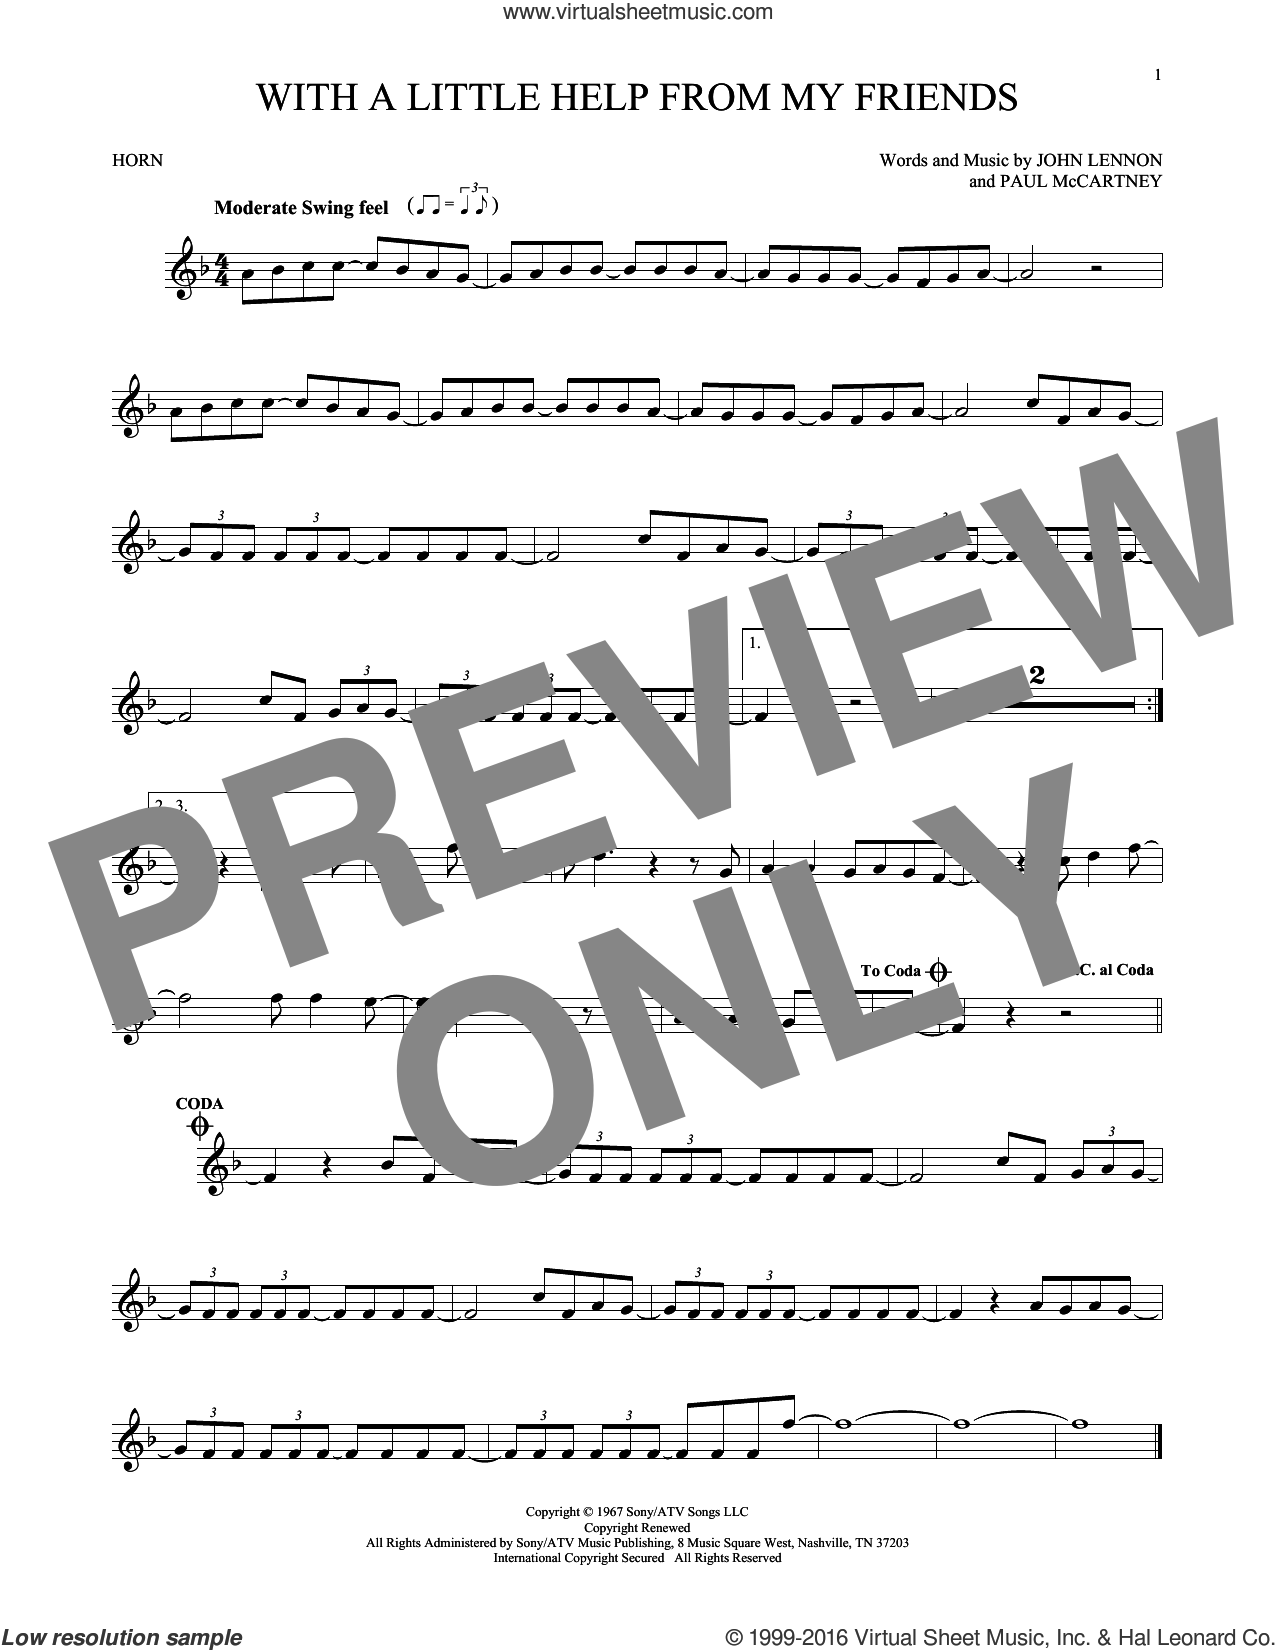 With A Little Help From My Friends sheet music for horn solo by The Beatles, Joe Cocker, John Lennon and Paul McCartney, intermediate skill level